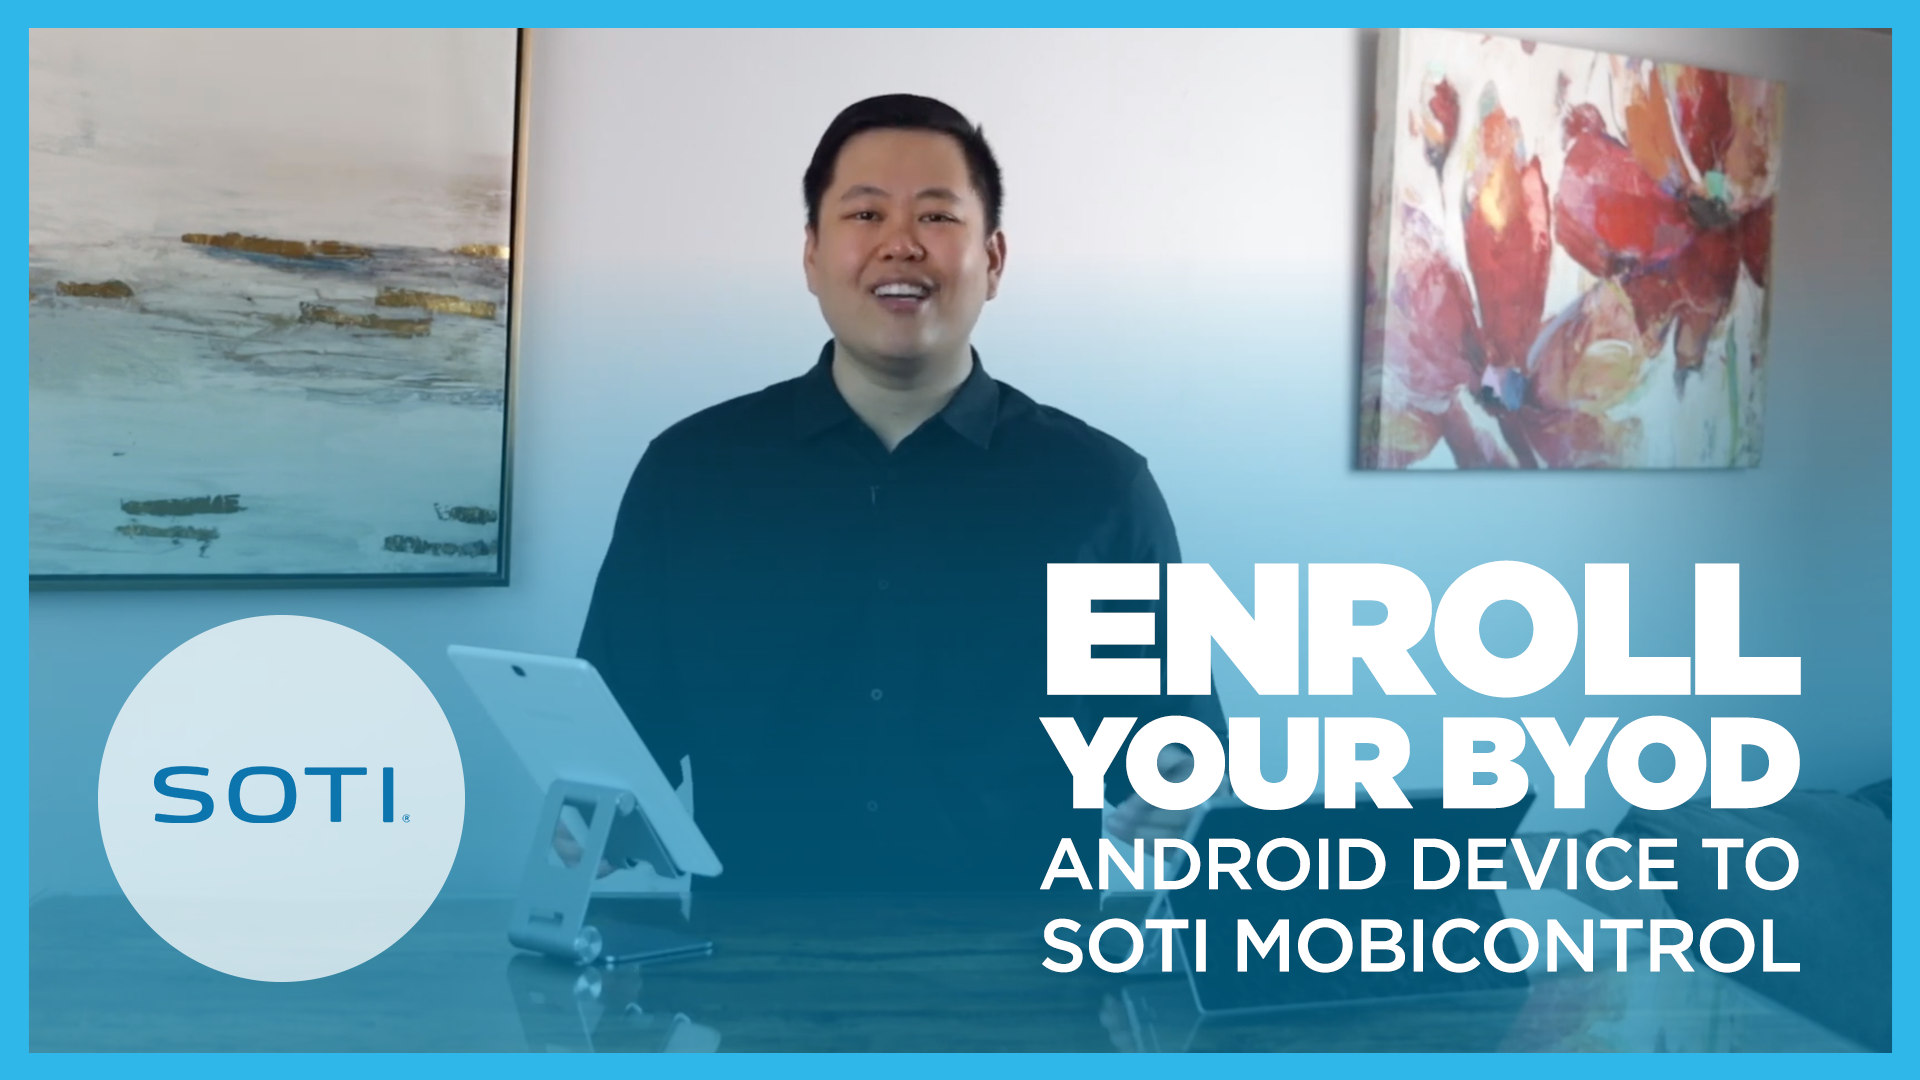 Video on How To Enroll Your BYOD Android Device into SOTI MobiControl